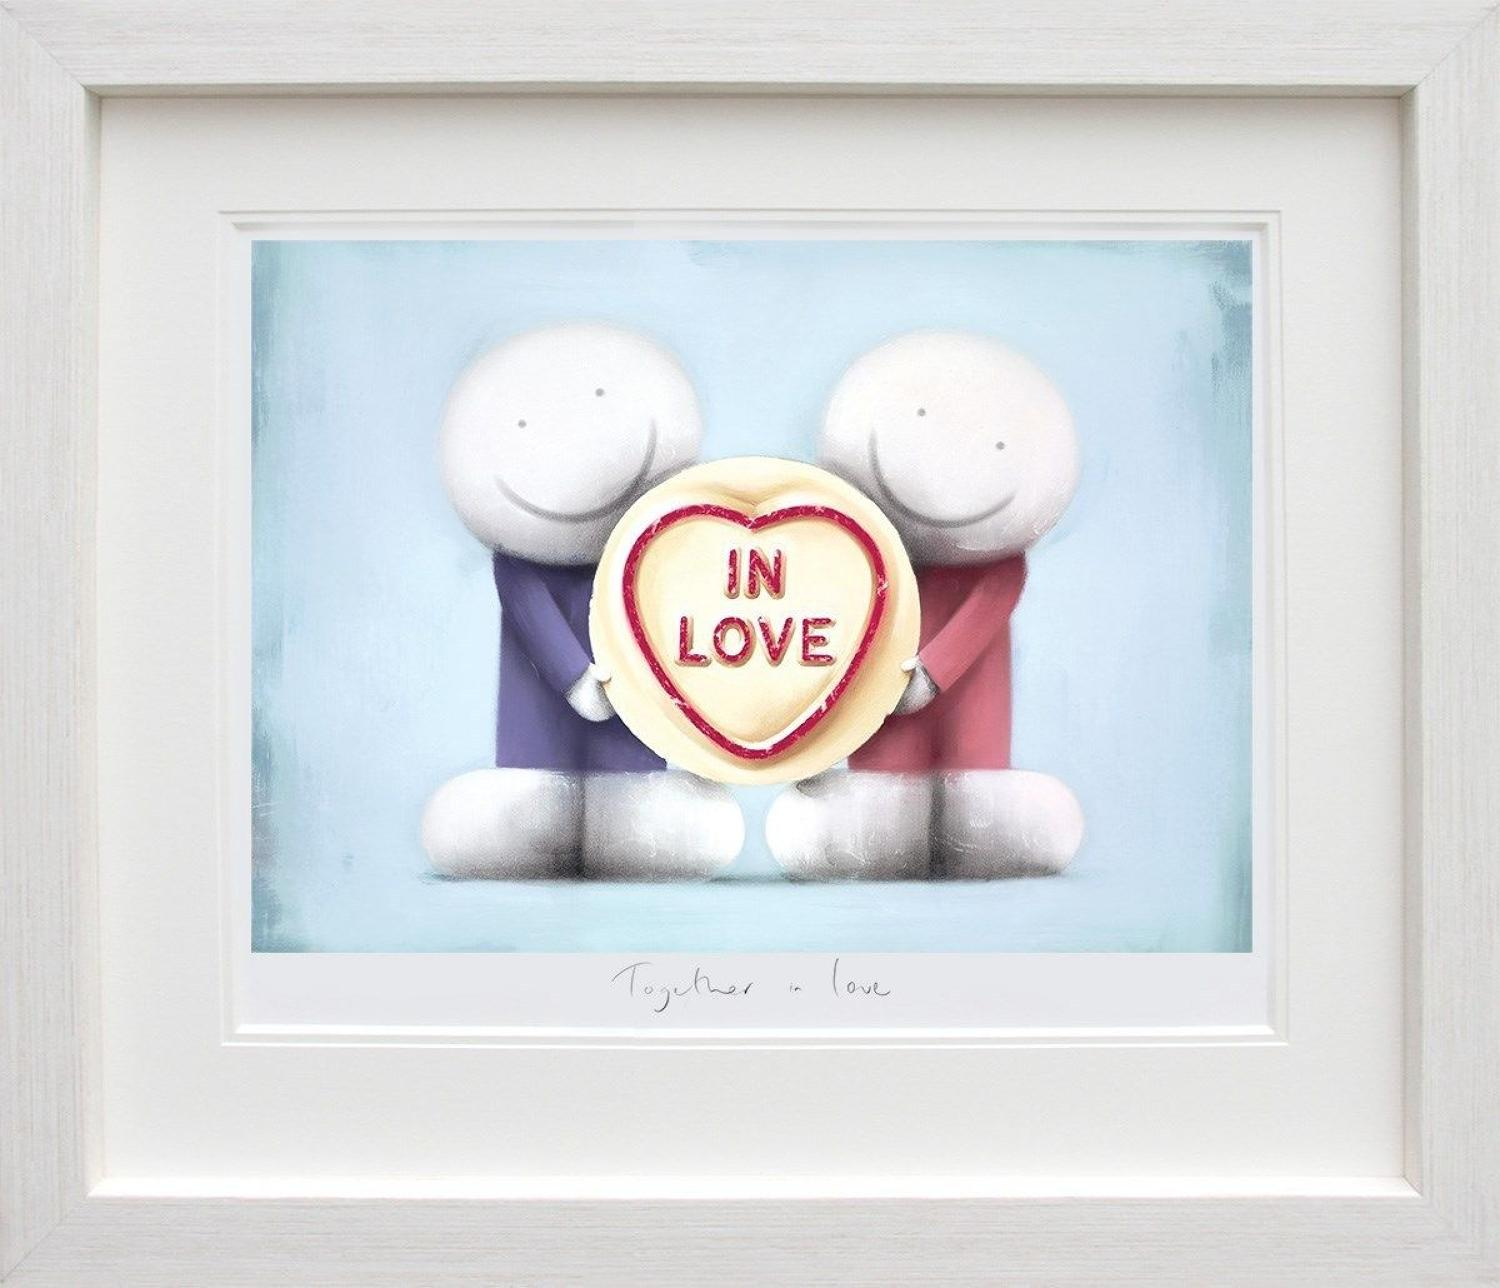 Together in Love by Doug Hyde Framed Art Print